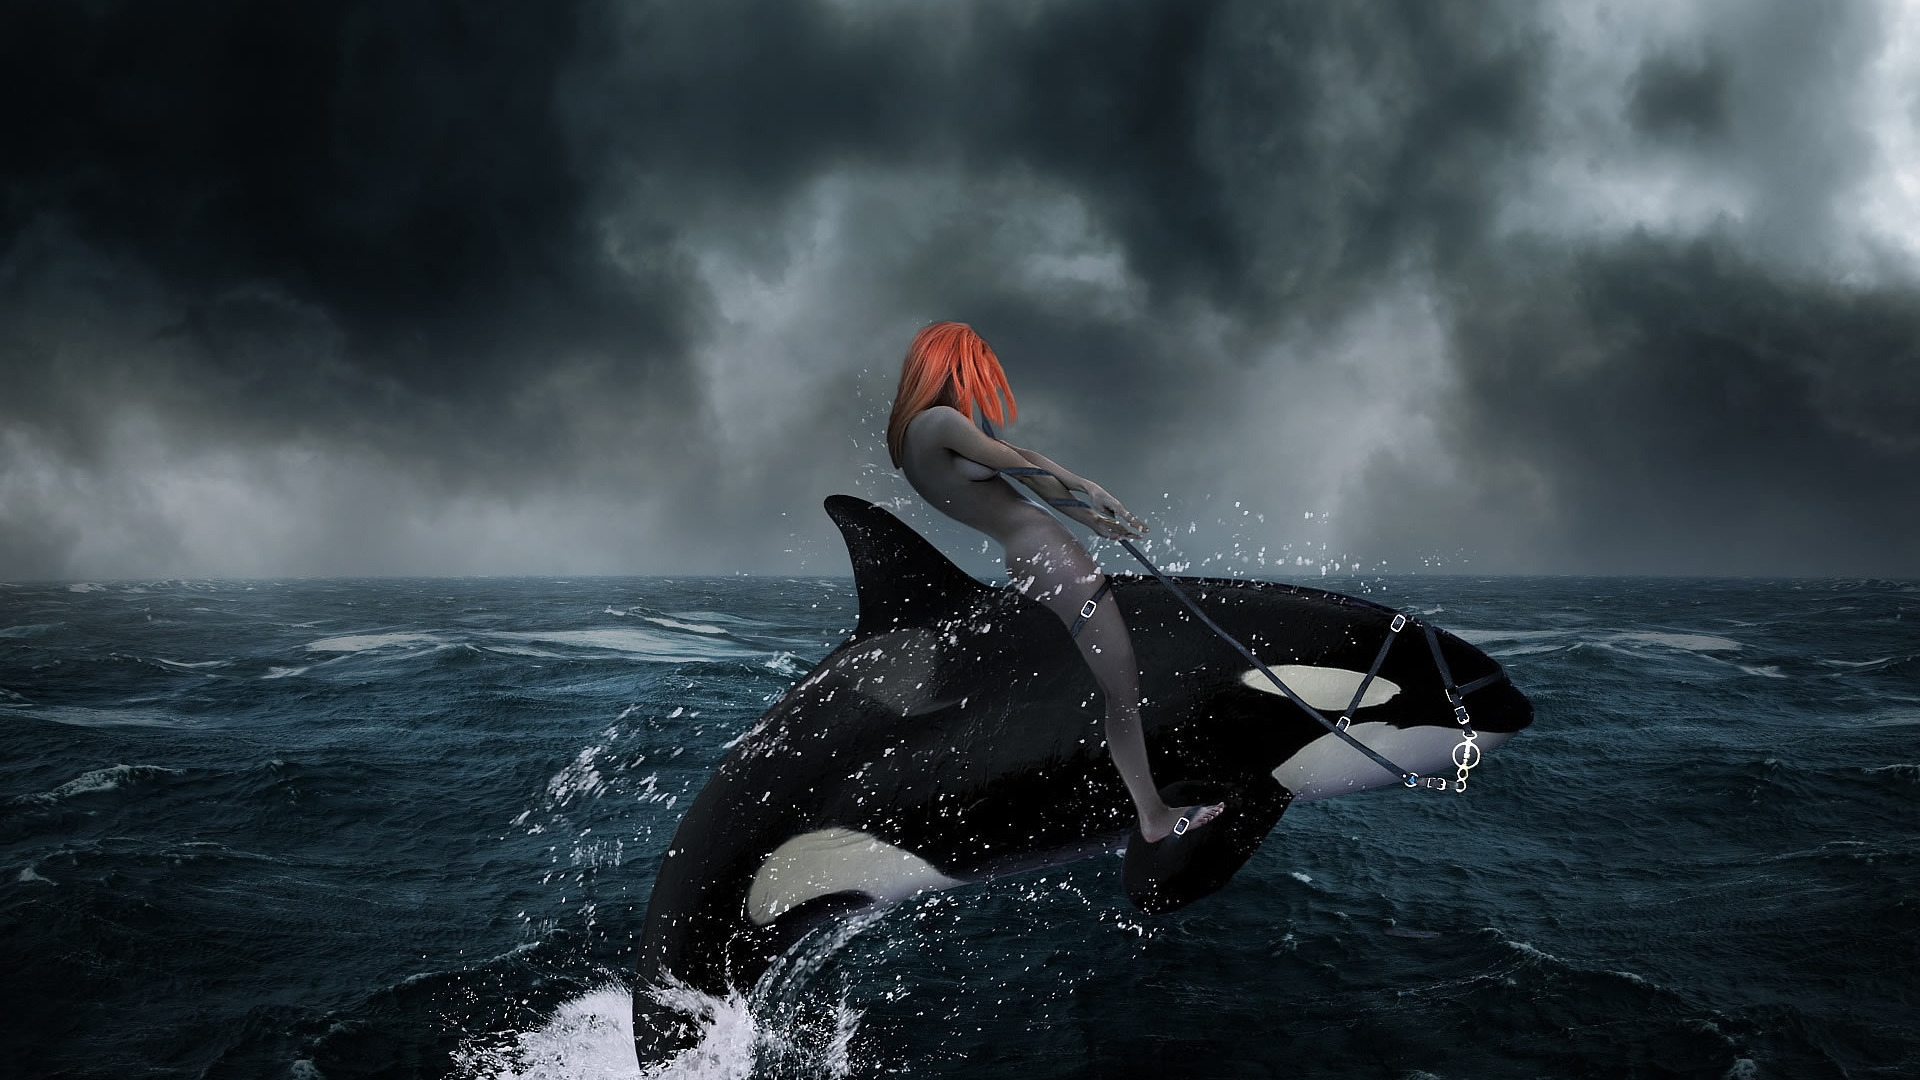 Redhead Riding A Killer Whale Abstract